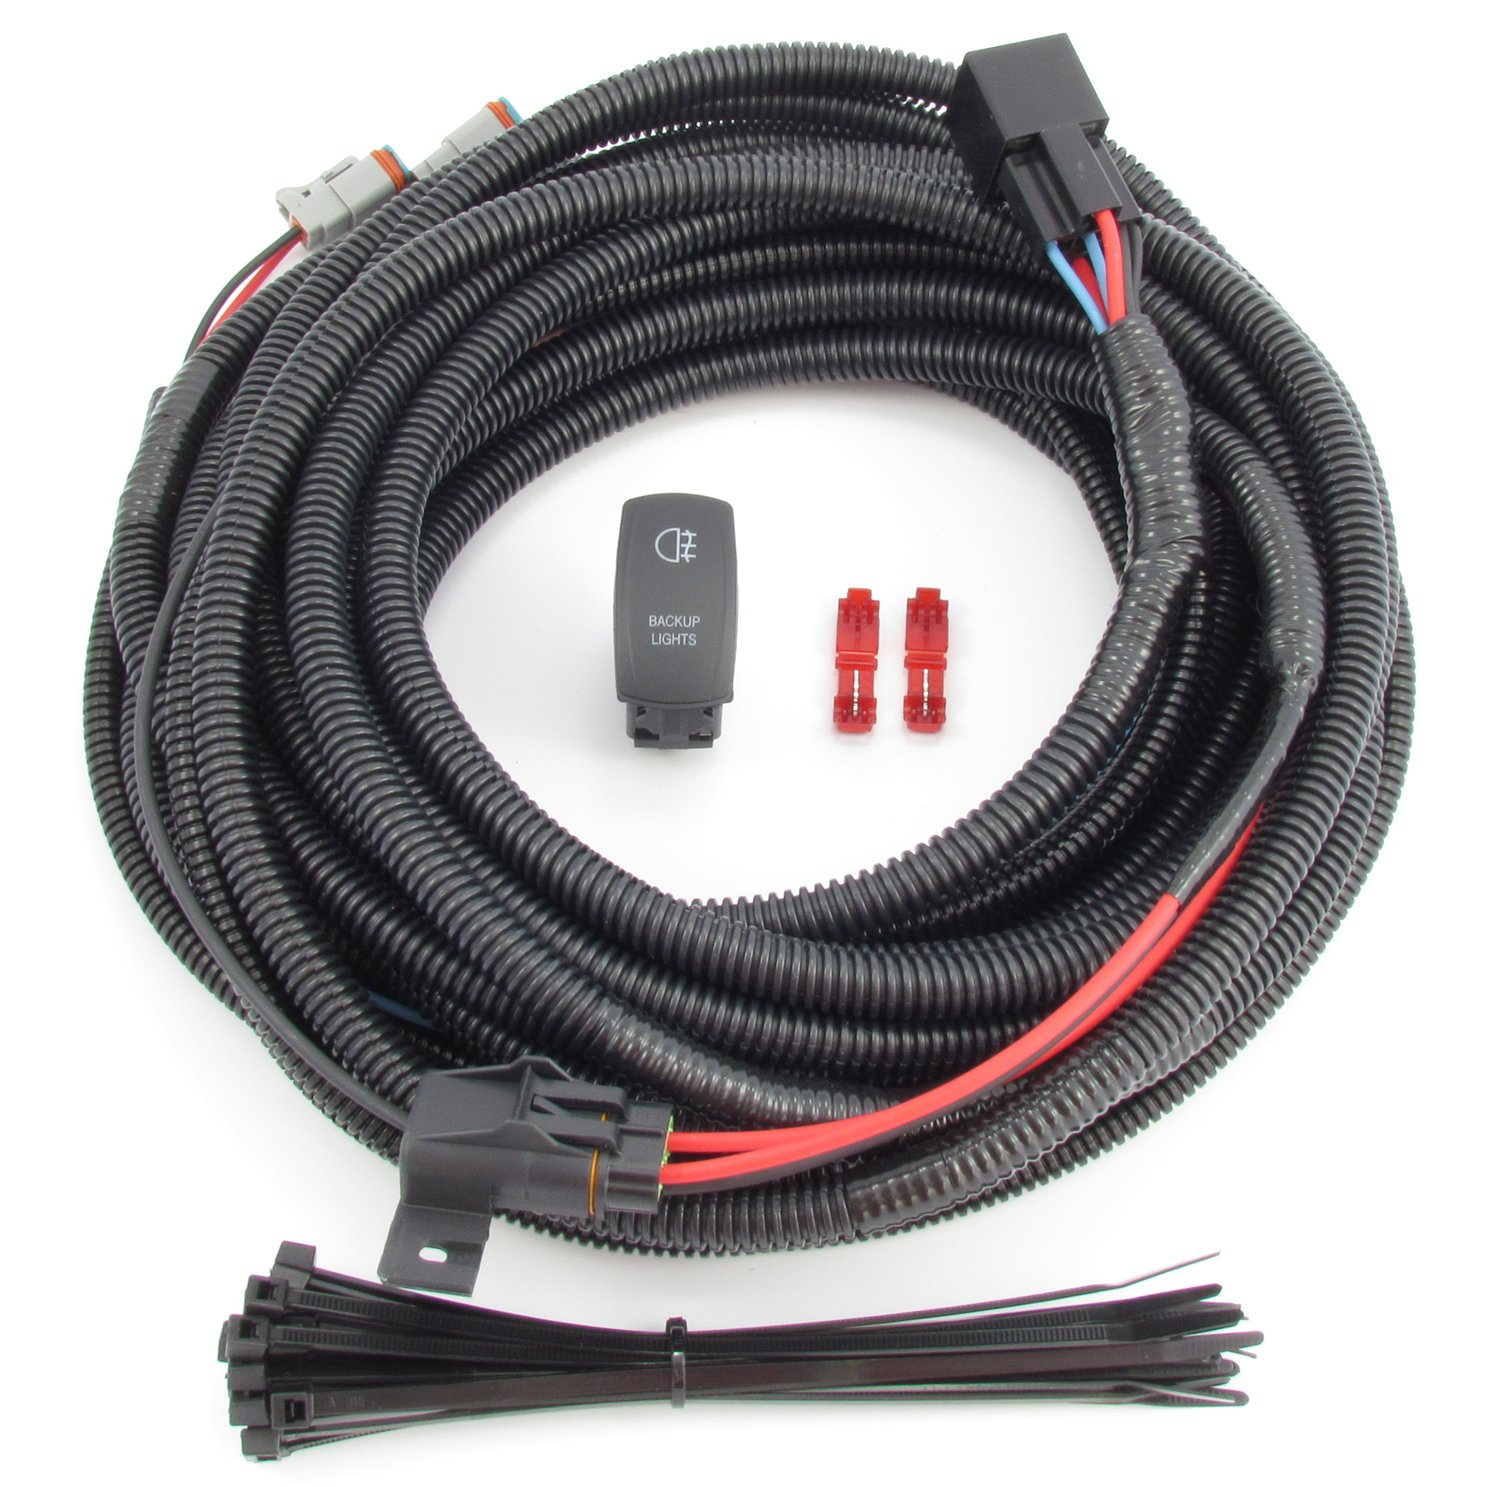 Amazon.com: Truck & SUV Backup/ Auxiliary Lighting Wiring & Switch Kit:  Automotive